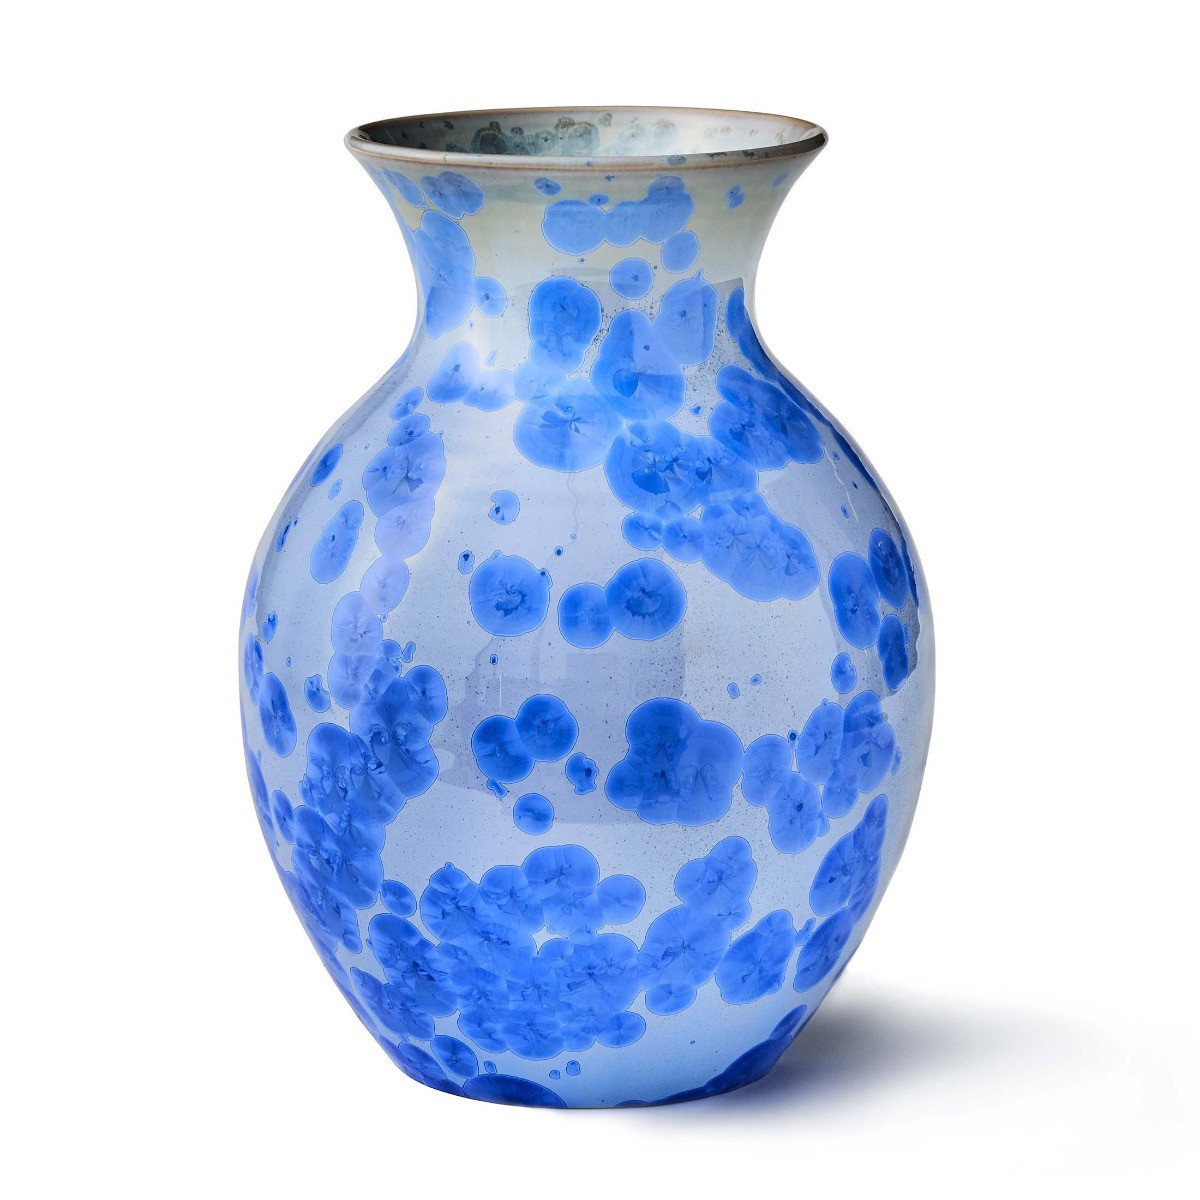 simon pearce vase sale of curio cobalt crystalline vase large with 8543 curiocrystalline vase cobalt